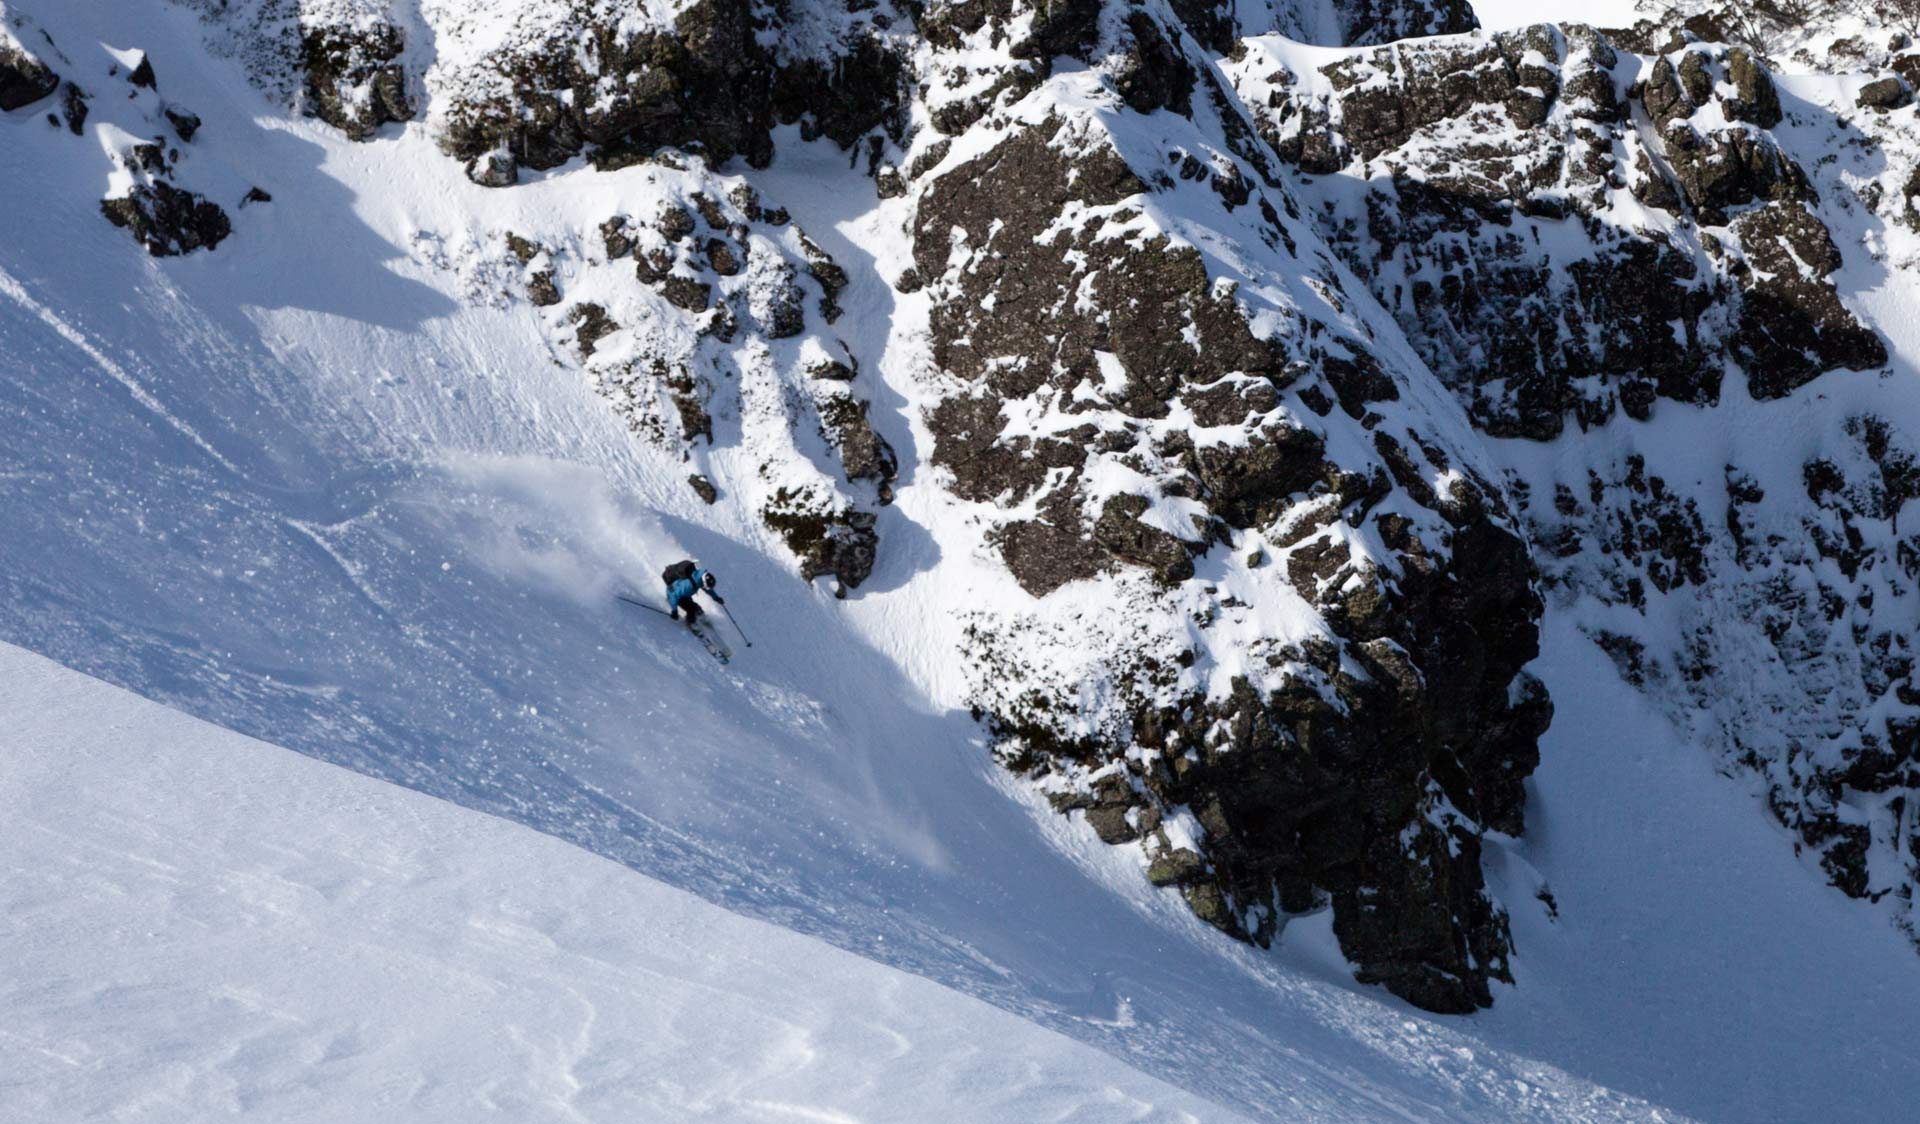 A ski-mountaineer tackles a steep slope on the side of Mt Bogong.